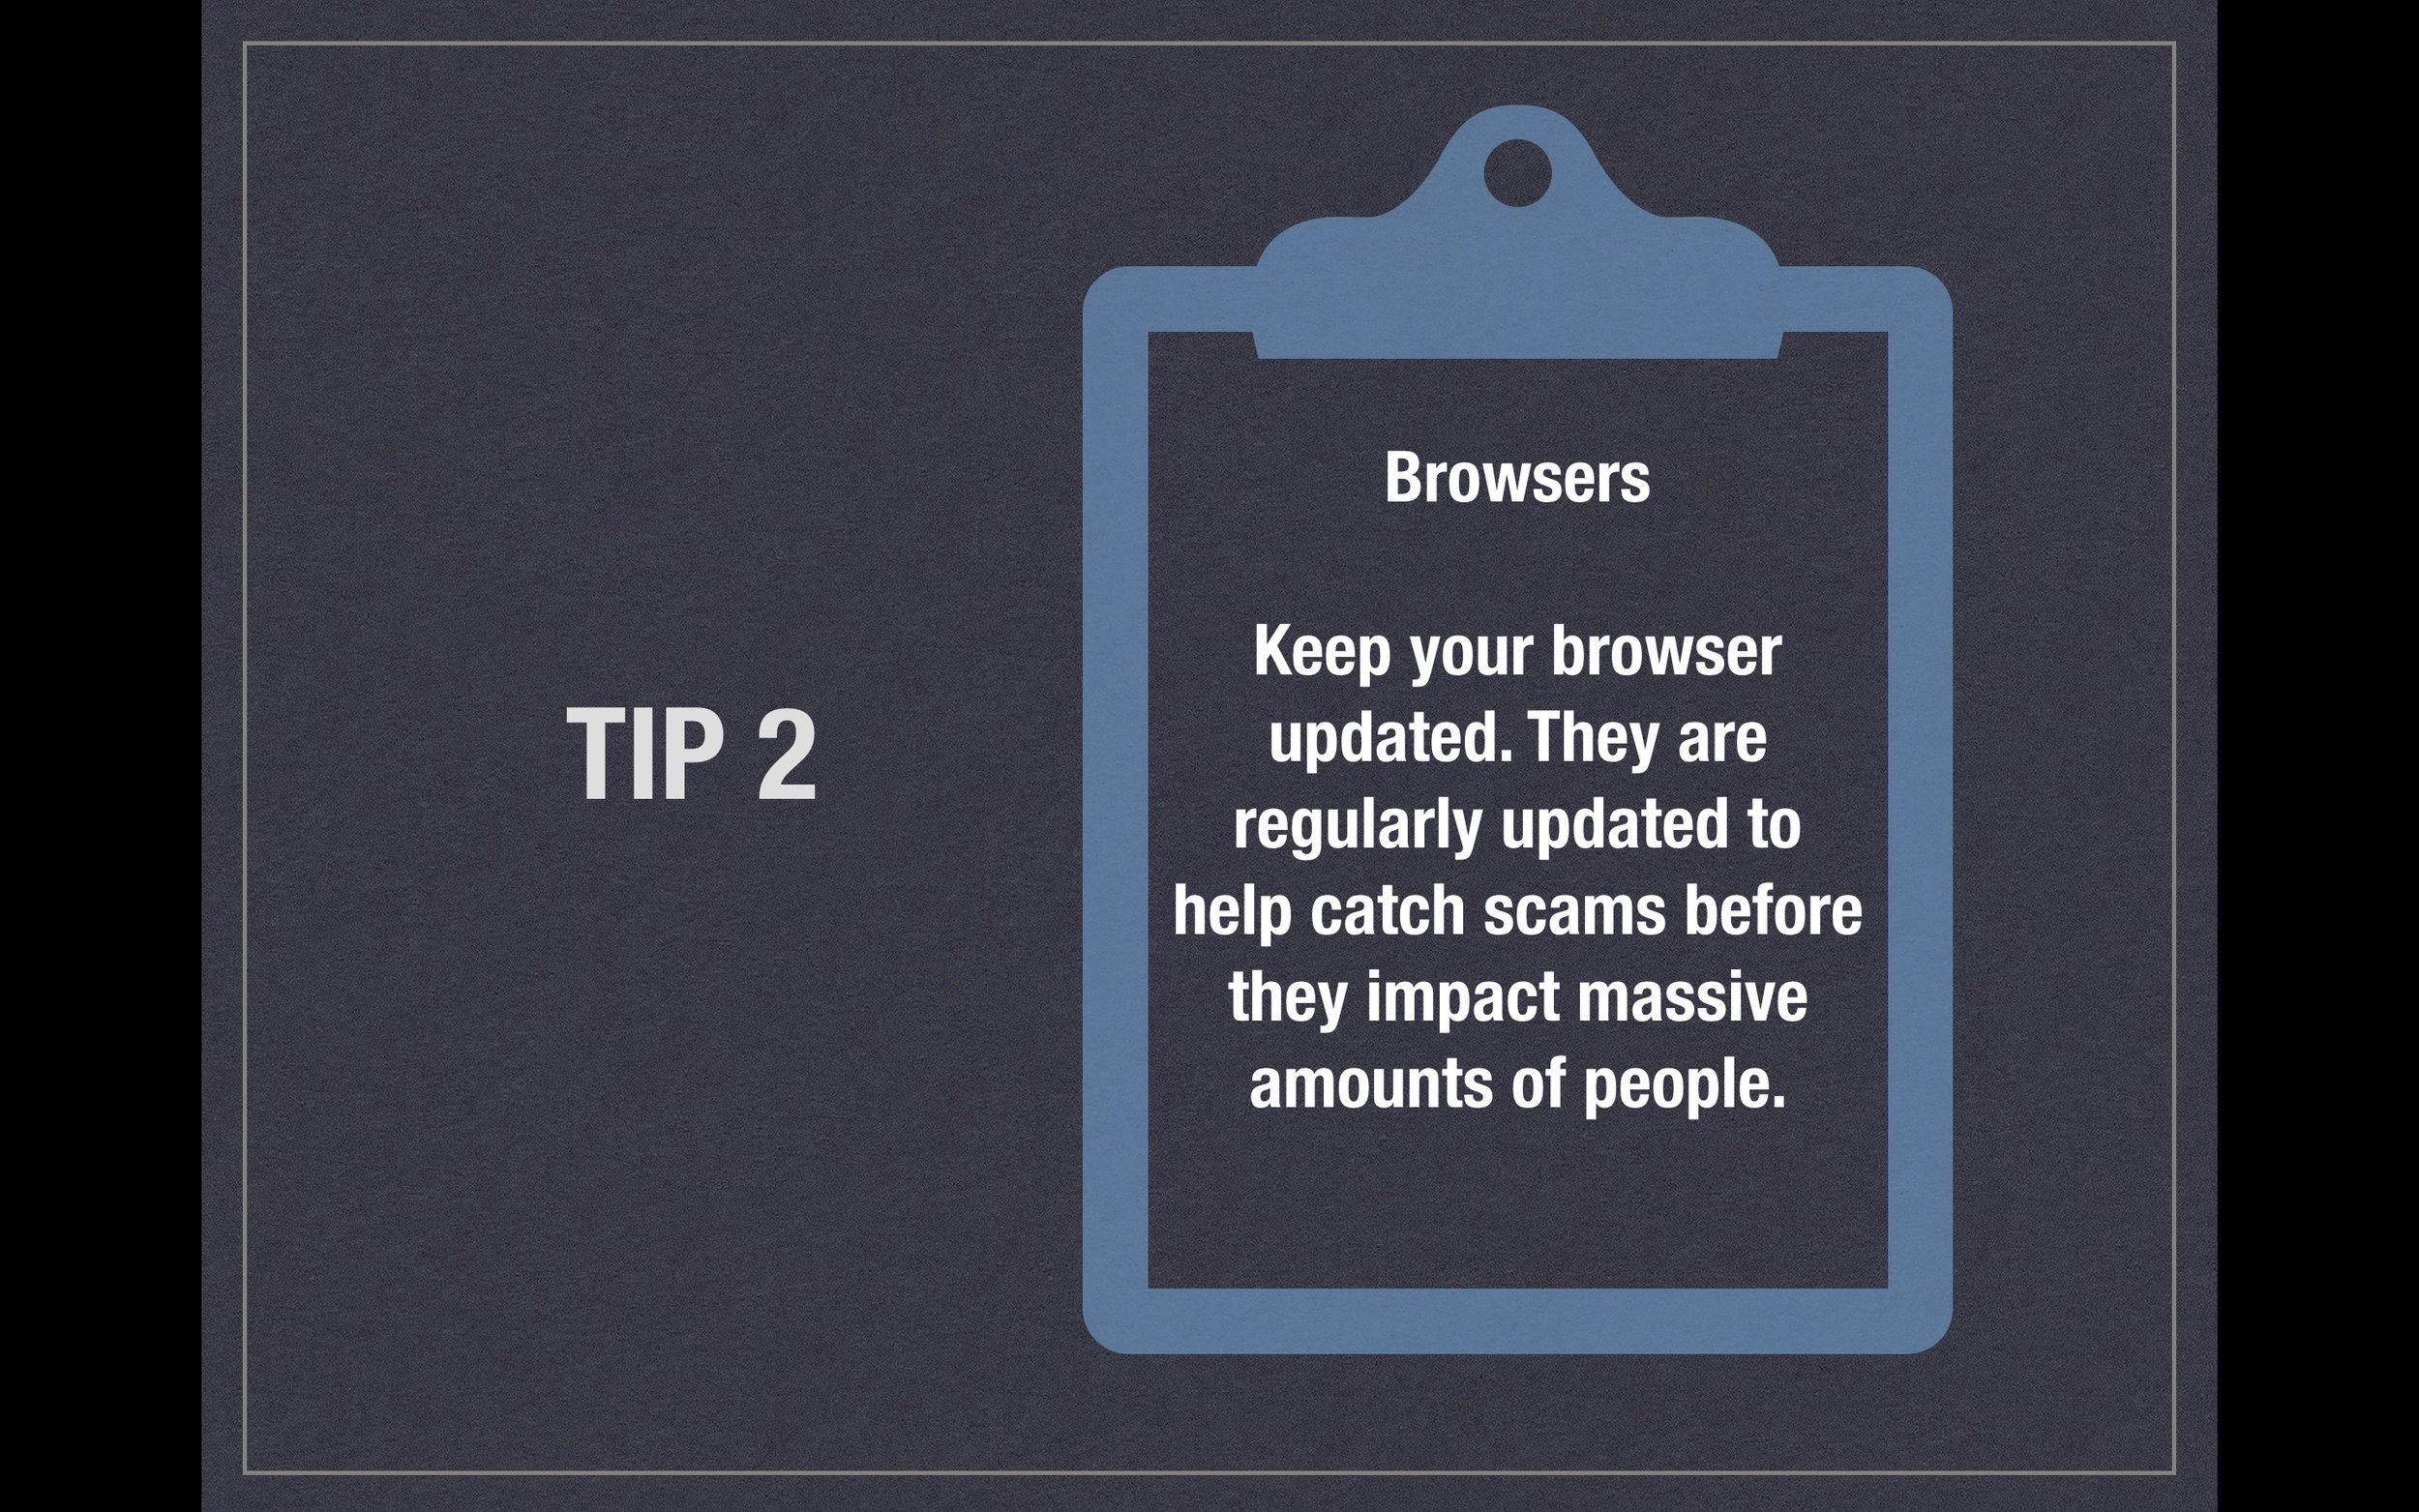 Tip 2 - Browsers - Keep your browser updated. They are regularly updated to help catch scams before they impact massive amounts of people.